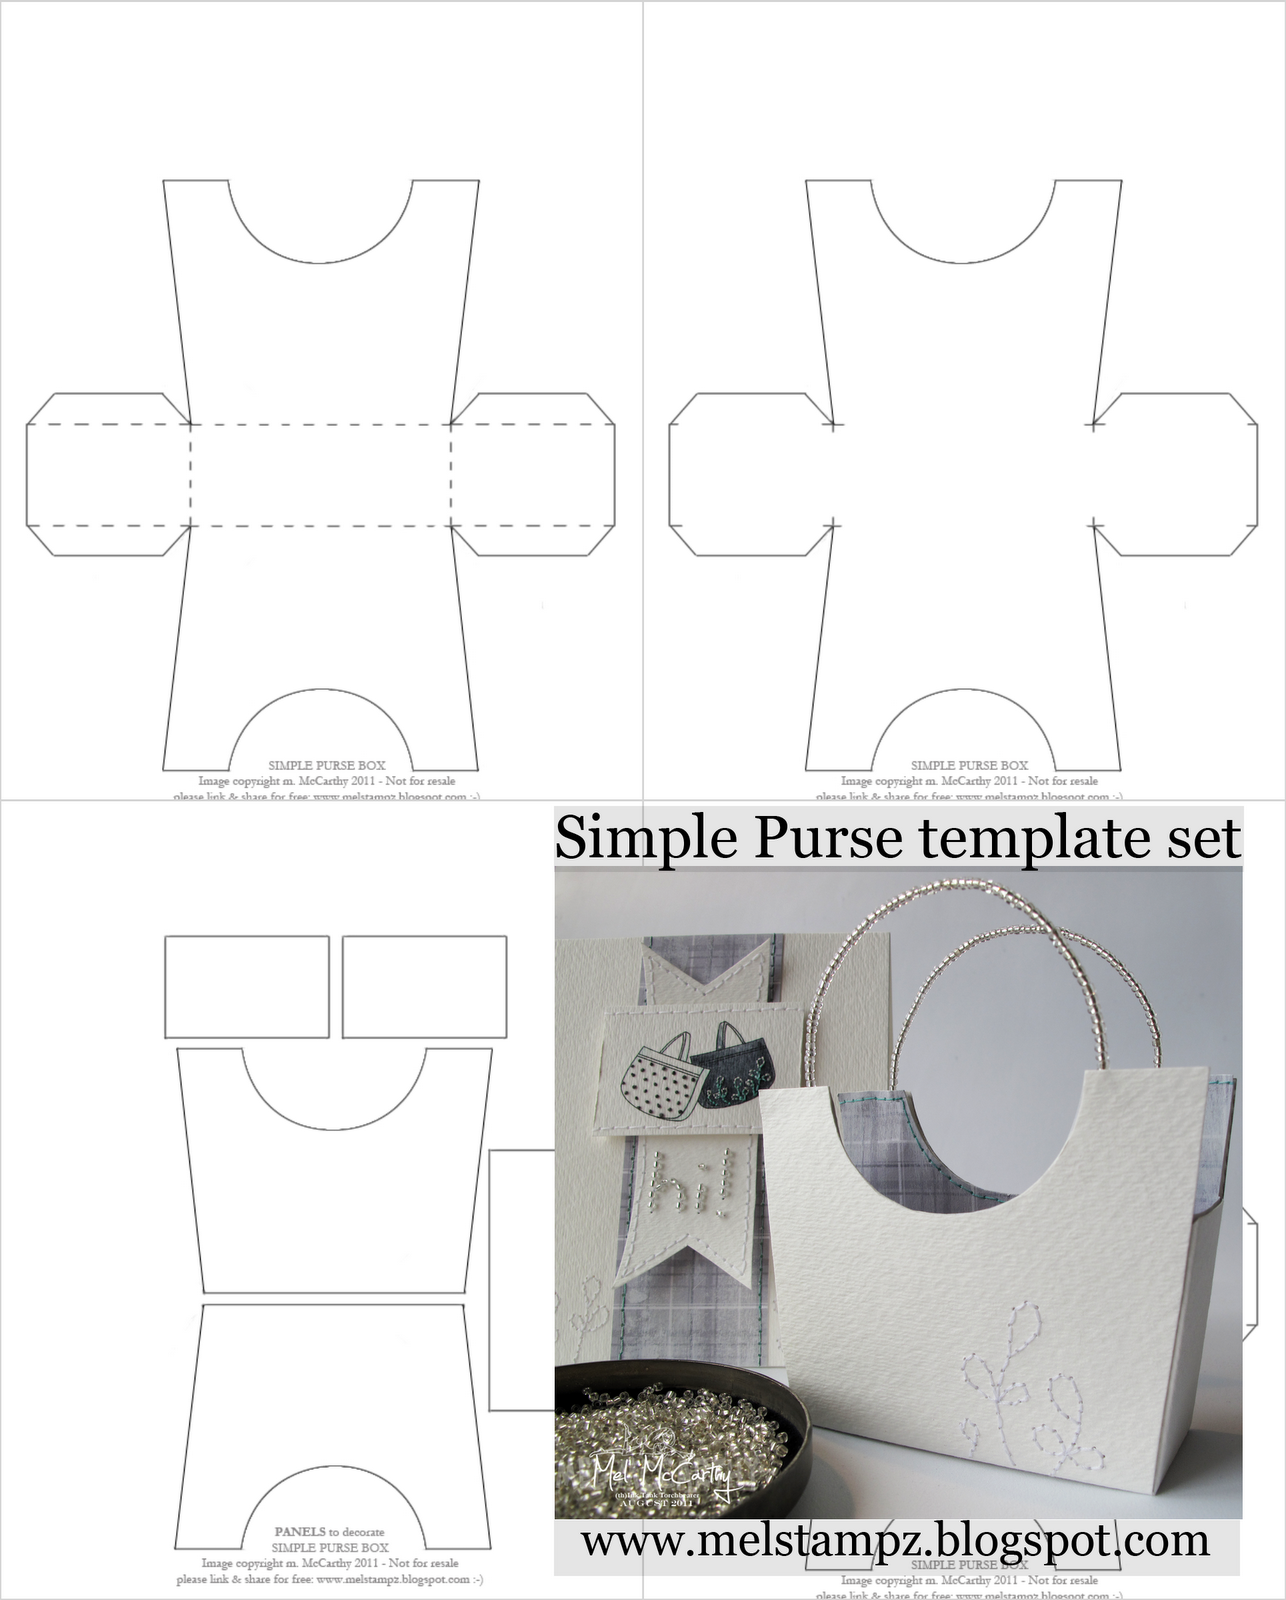 Mel Stampz New simple purse box Templates – Template Box Free Templates